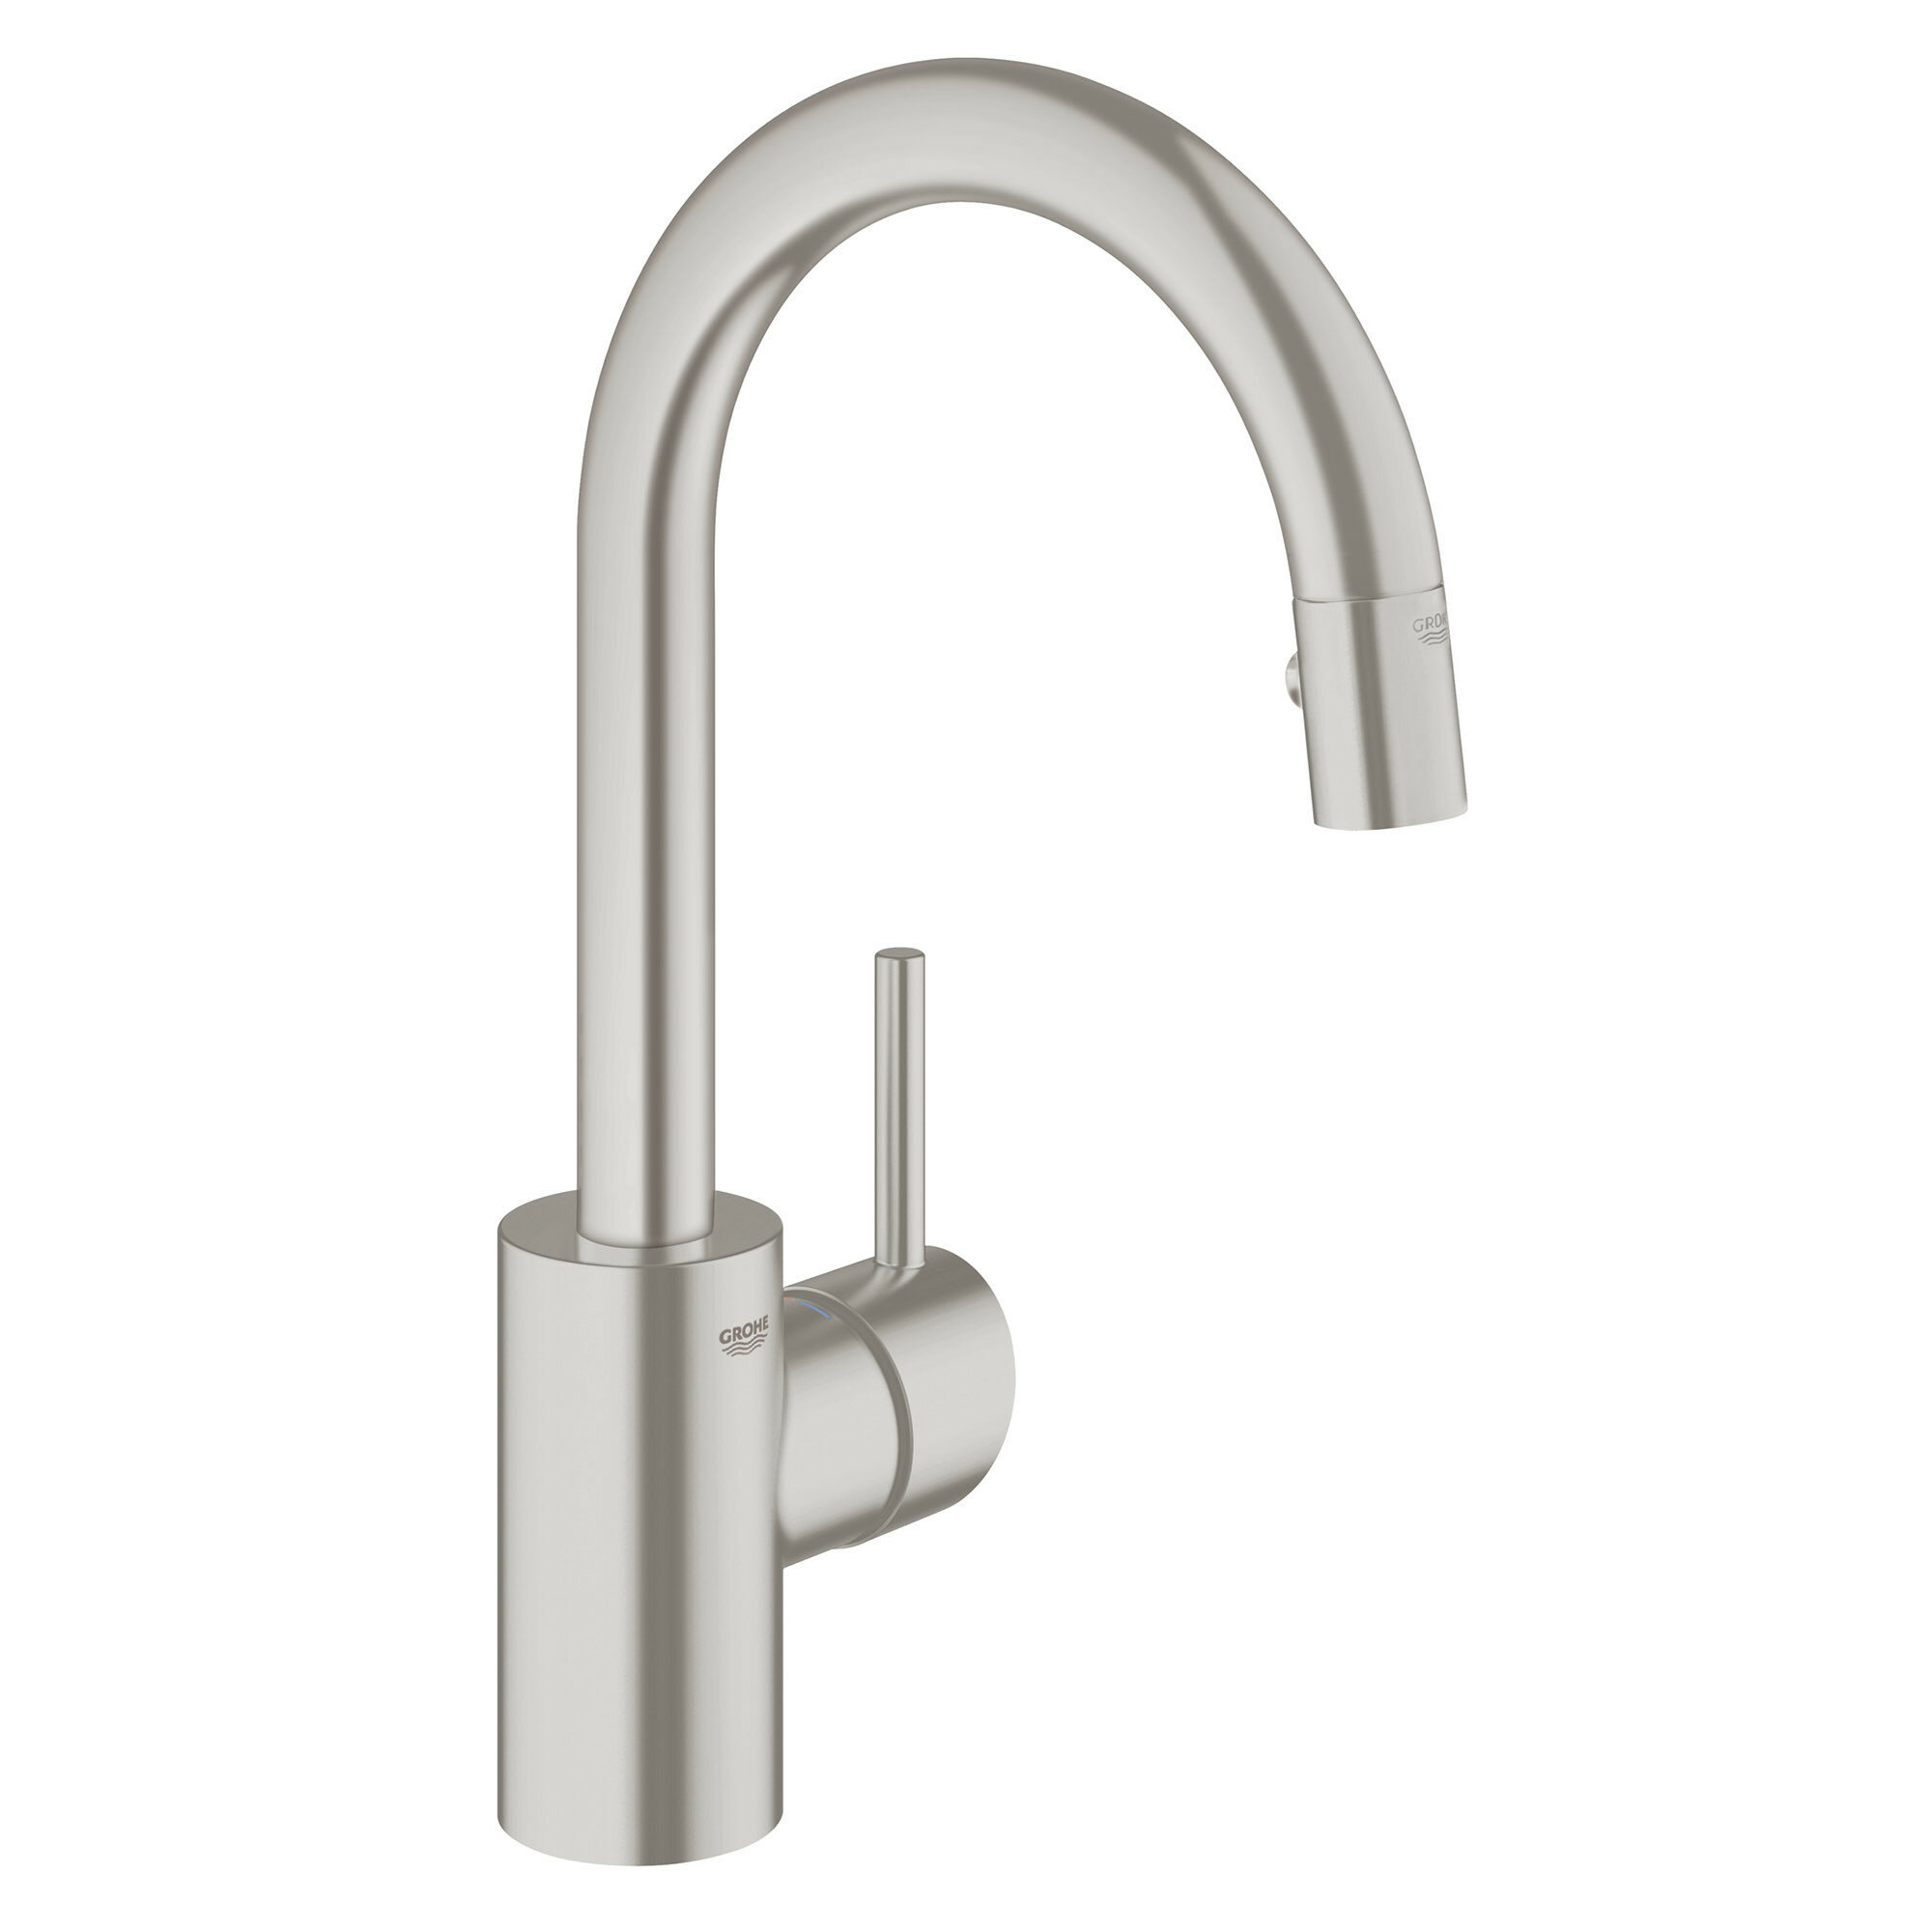 31479000 Concetto Single Handle Kitchen Faucet With Pull Out Spray And Silkmove